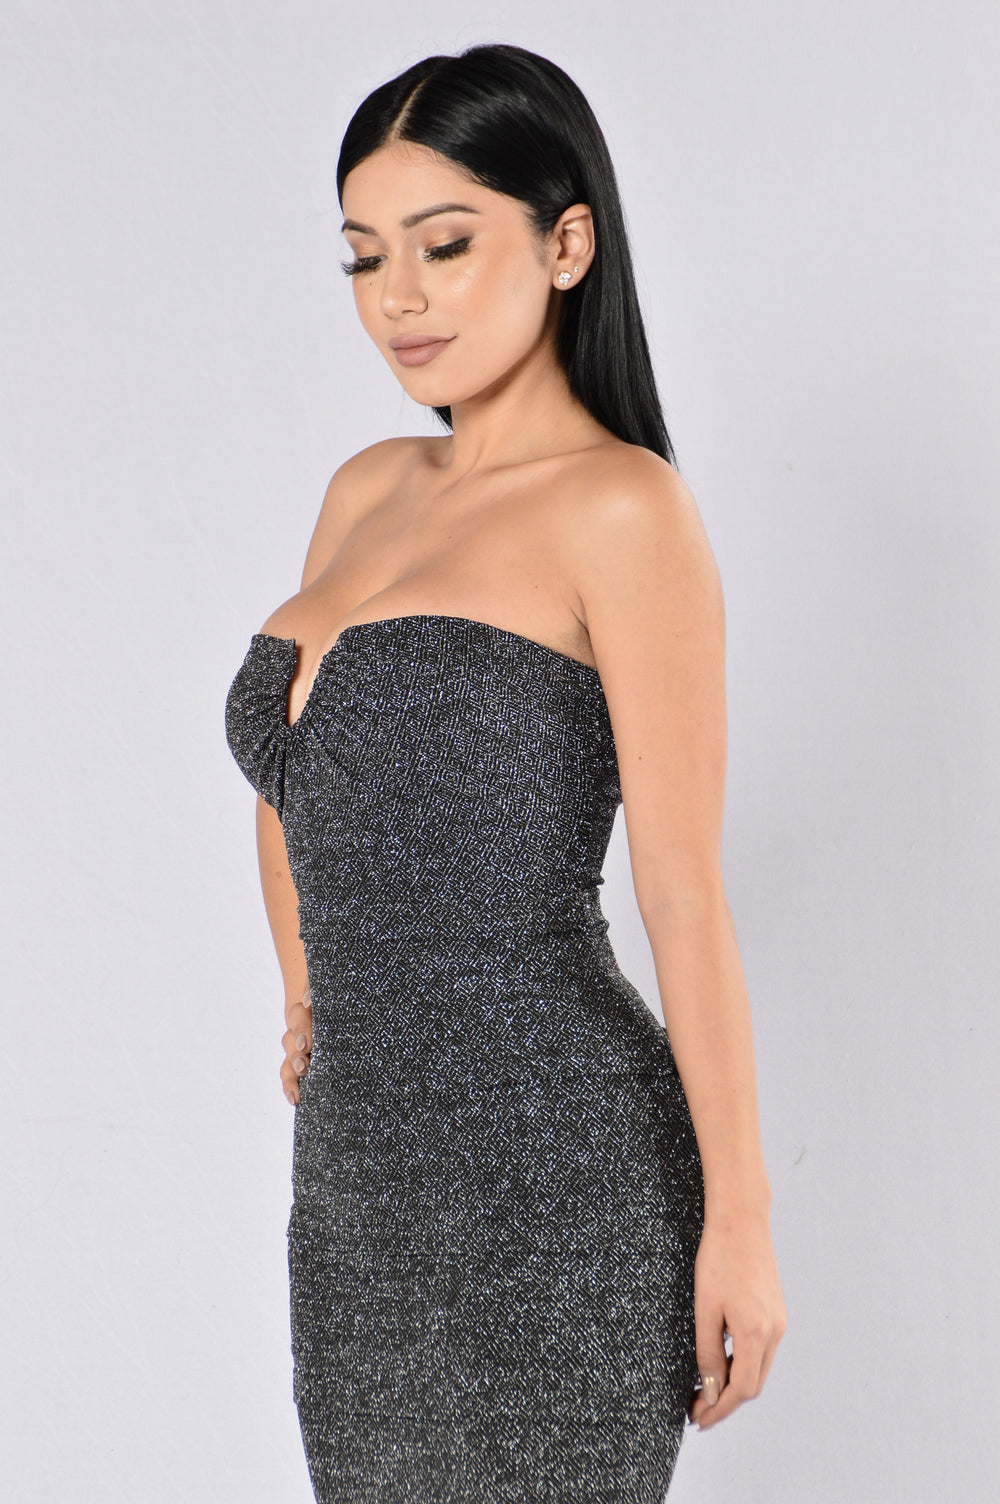 In Love With You Dress - Silver/Black